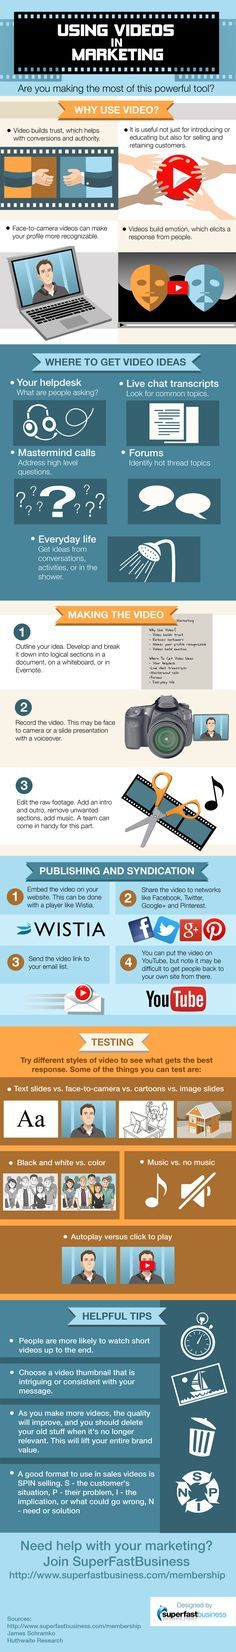 Using Videos In Marketing:One viral video can change the course of any company regardless of size and the product it sells. .... Increase Conversions Significantly by Using Youtube Cards In Your Videos. See Example Here: https://www.youtube.com/watch?v=9OUY47q62Z8